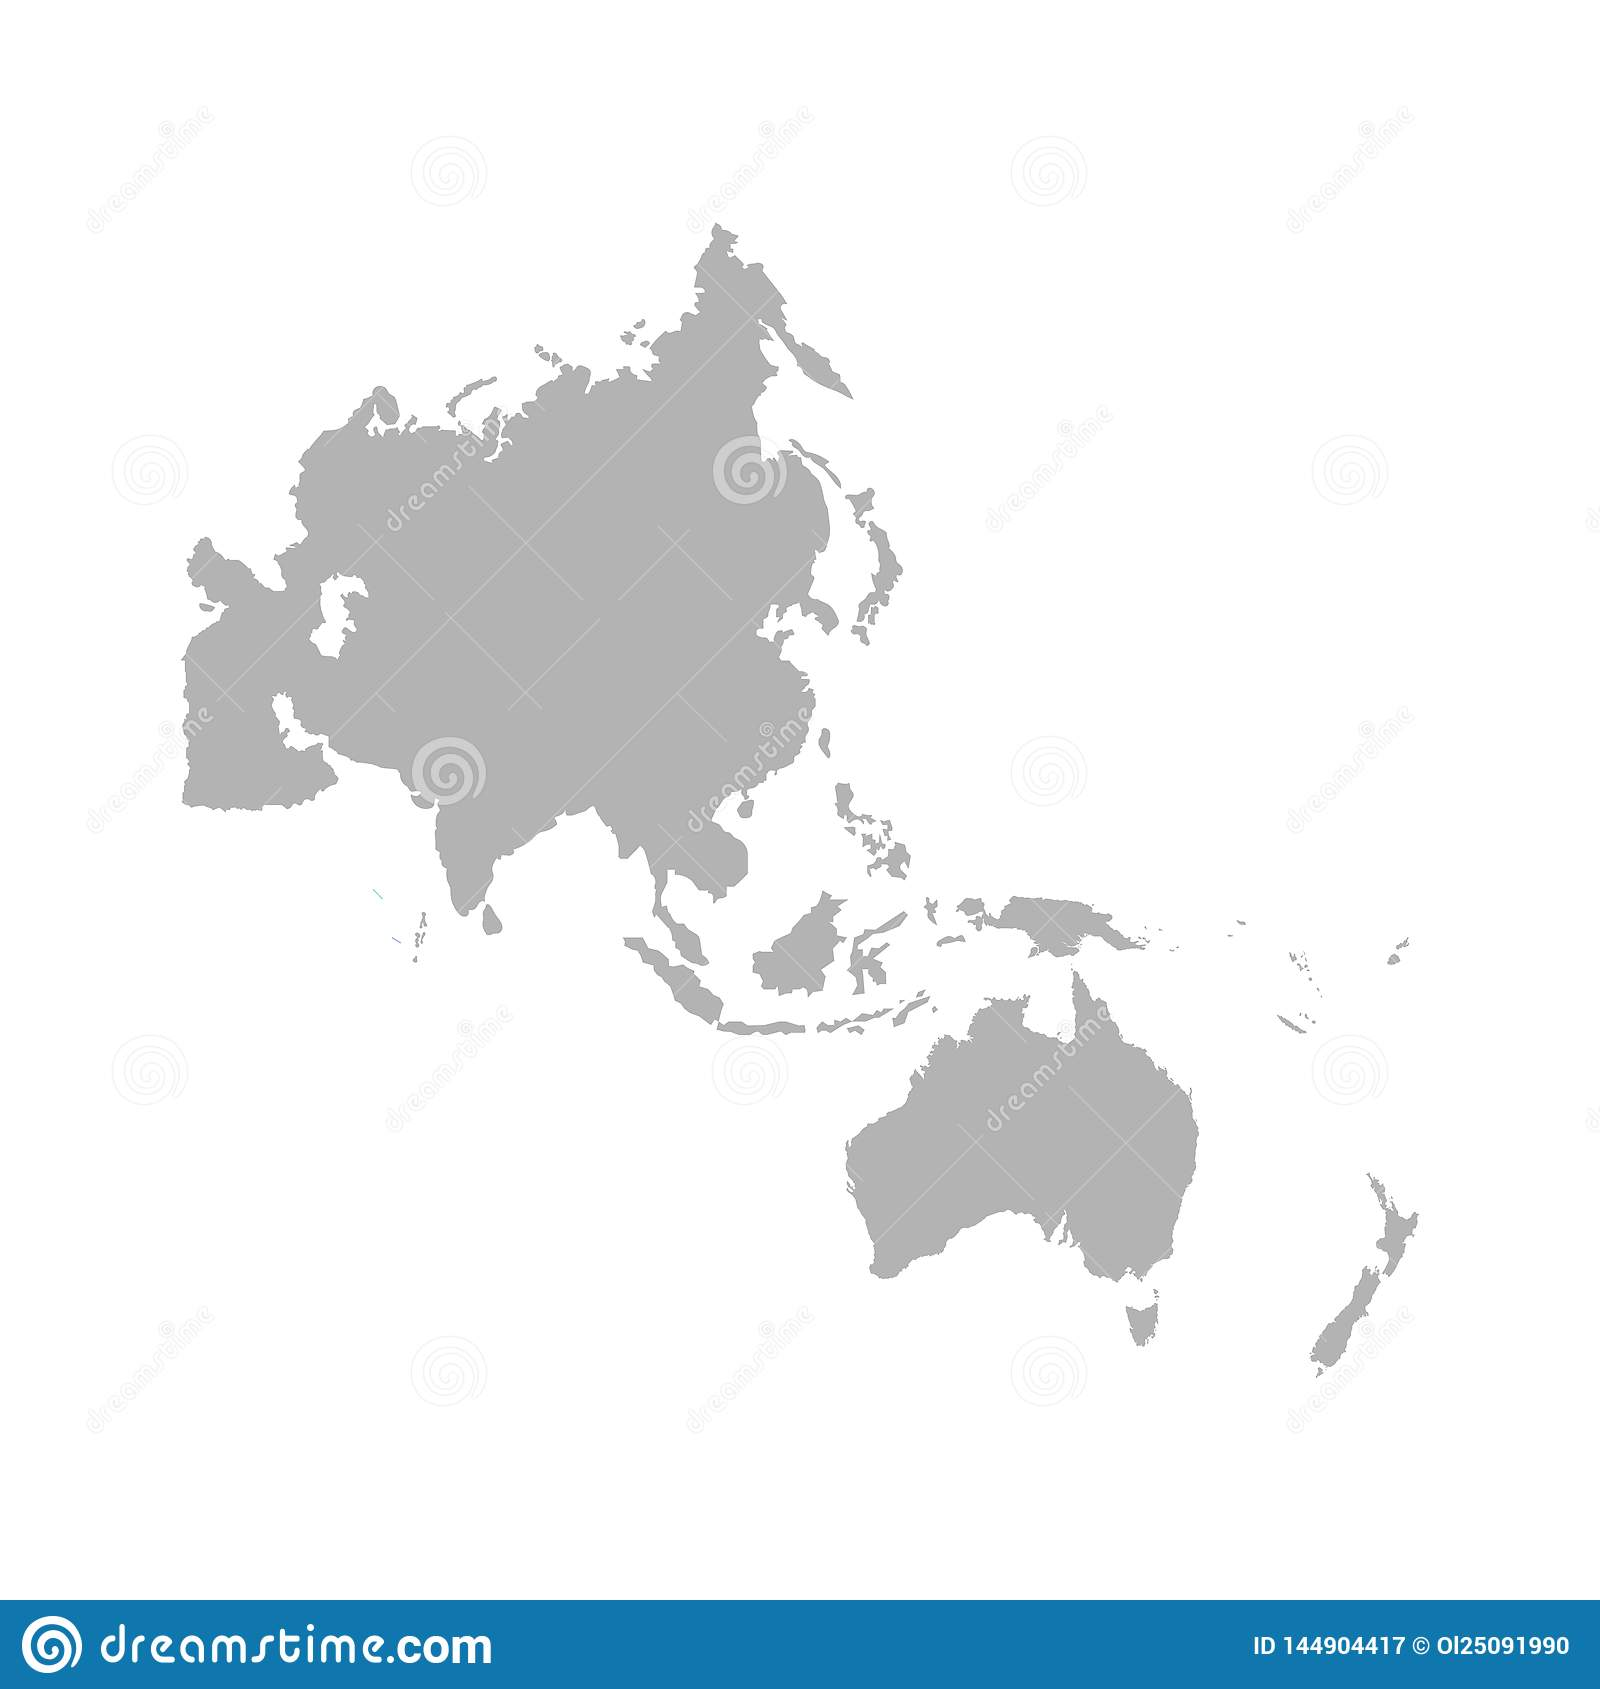 Map Of The Asia Pacific.Map Of Asia Pacific Vector Stock Illustration Illustration Of